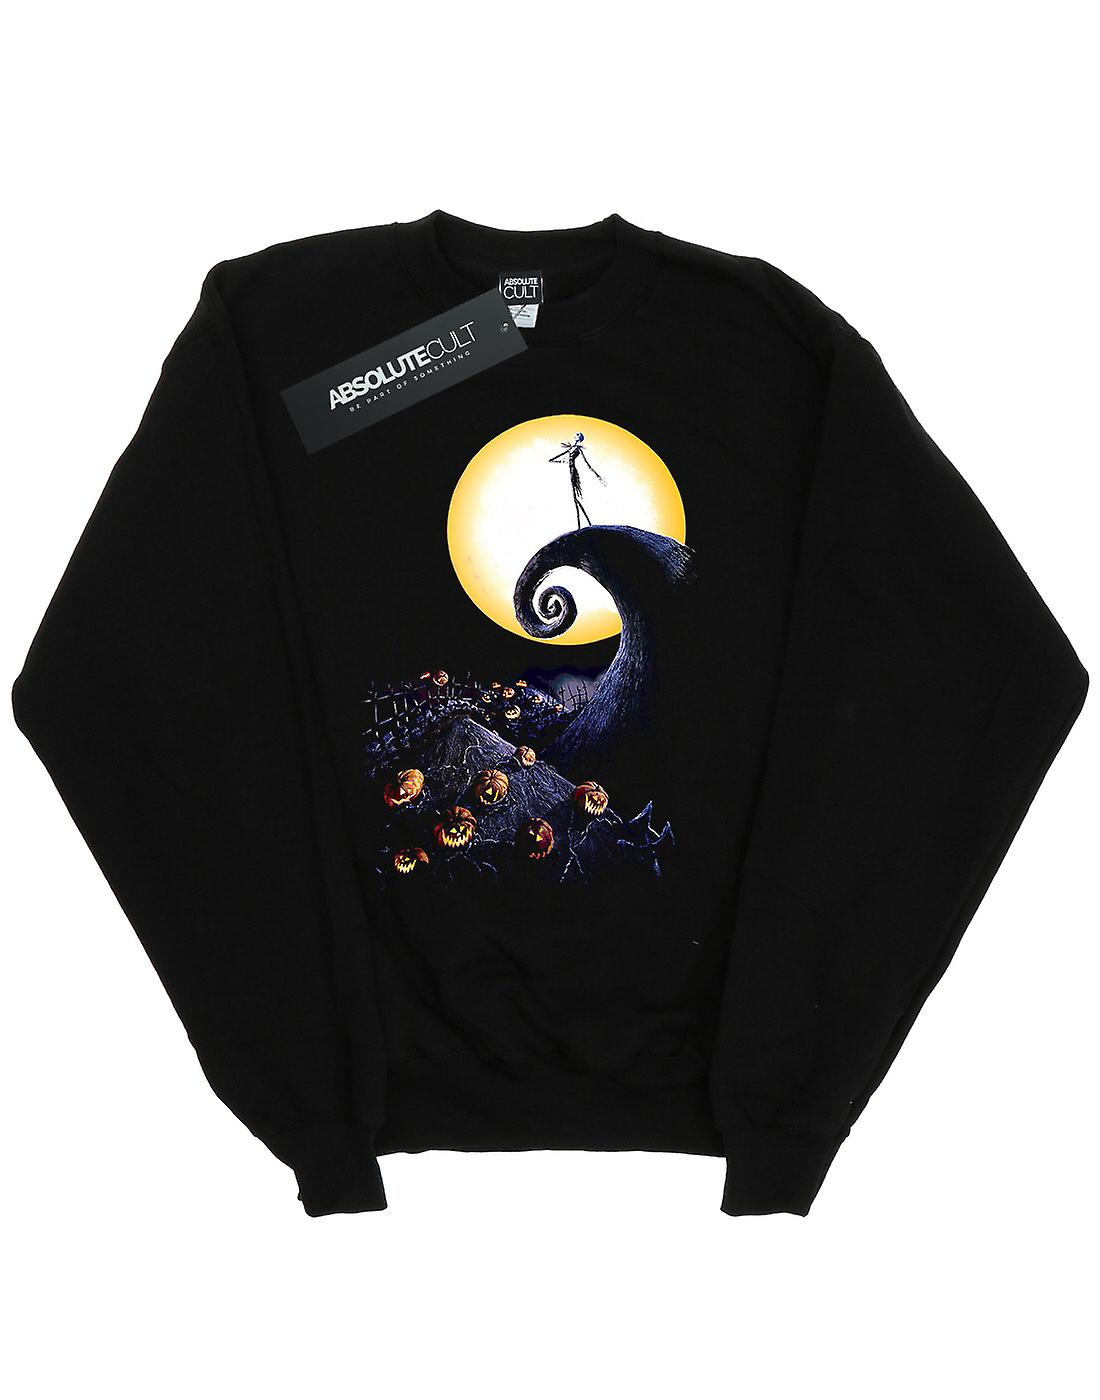 NEW THE NIGHTMARE BEFORE CHRISTMAS CEMETERY BLACK T-SHIRT OFFICIAL DISNEY